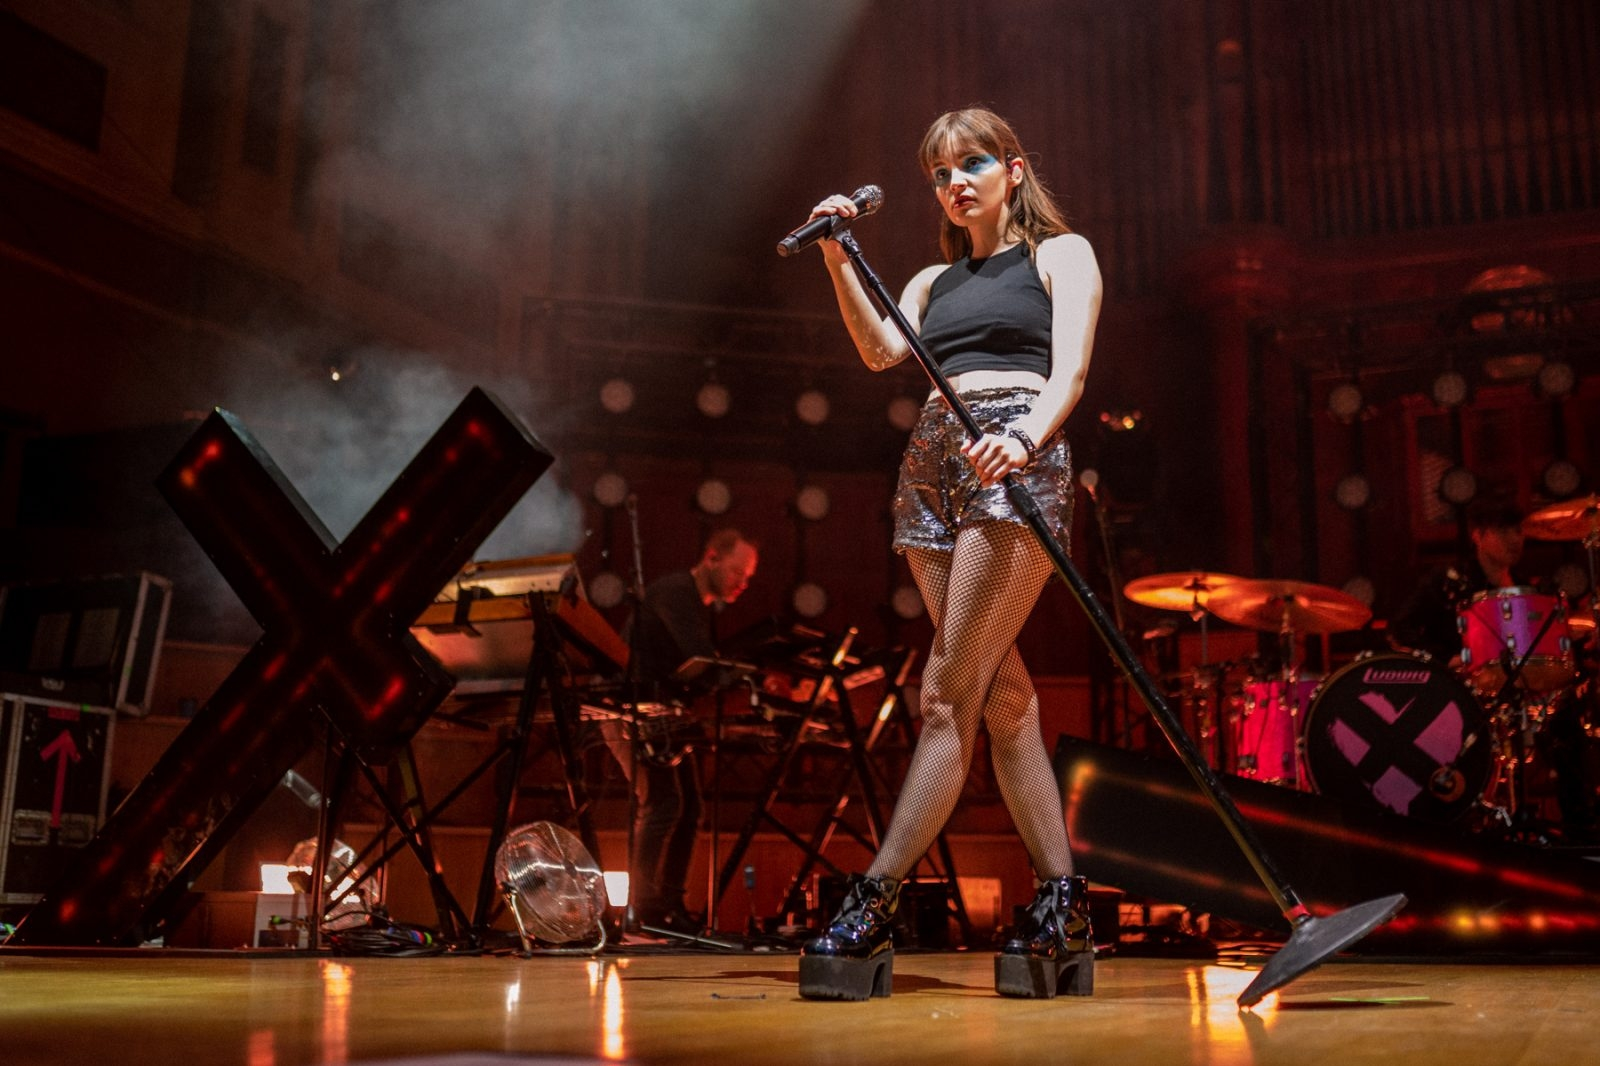 CHVRCHES live at the Ulster Hall, Belfast. Photos By Chris McGuigan Photography